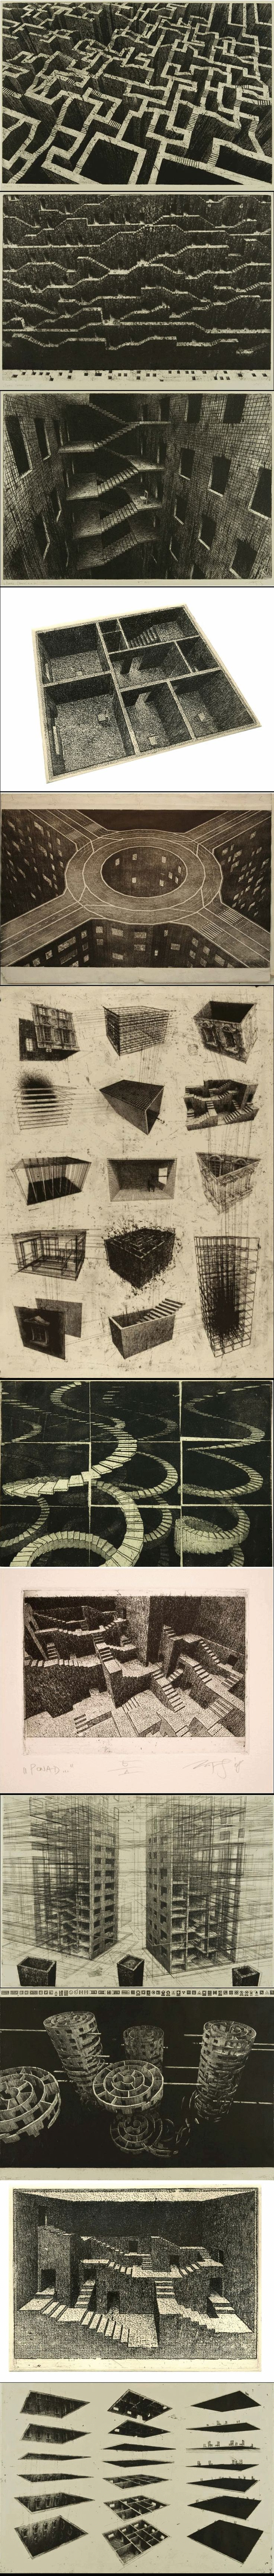 Marcin Bialas' Visions (from http://socks-studio.com/2014/03/05/infinite-stairs-and-dissected-buildings-marcin-bialas-visions/)